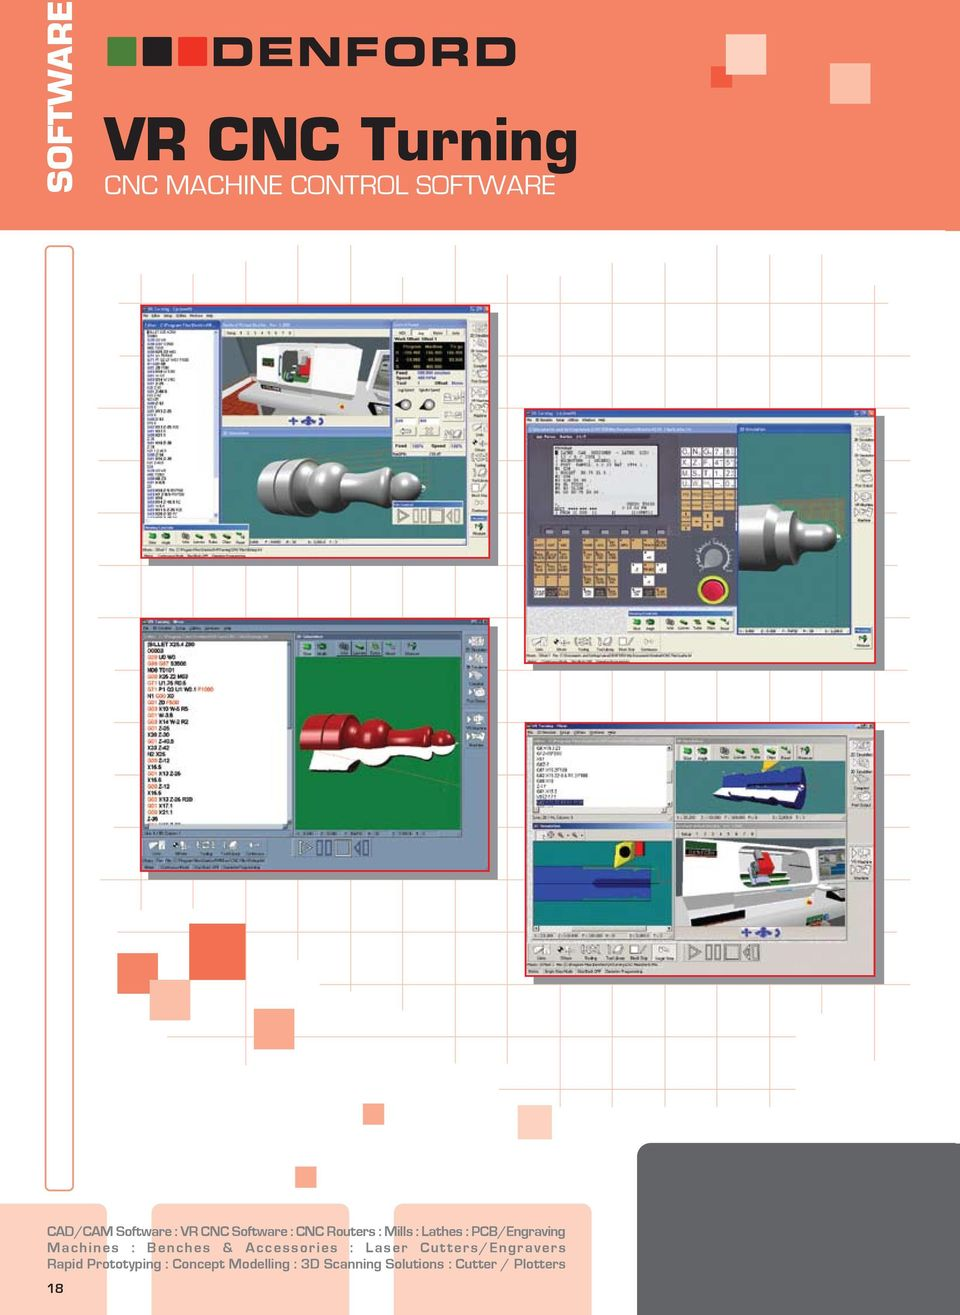 Denford Product Catalogue Cad Cam Solutions Projects For Education Denford Are The Proud Sponsors Of Innovative Educational Projects Pdf Free Download